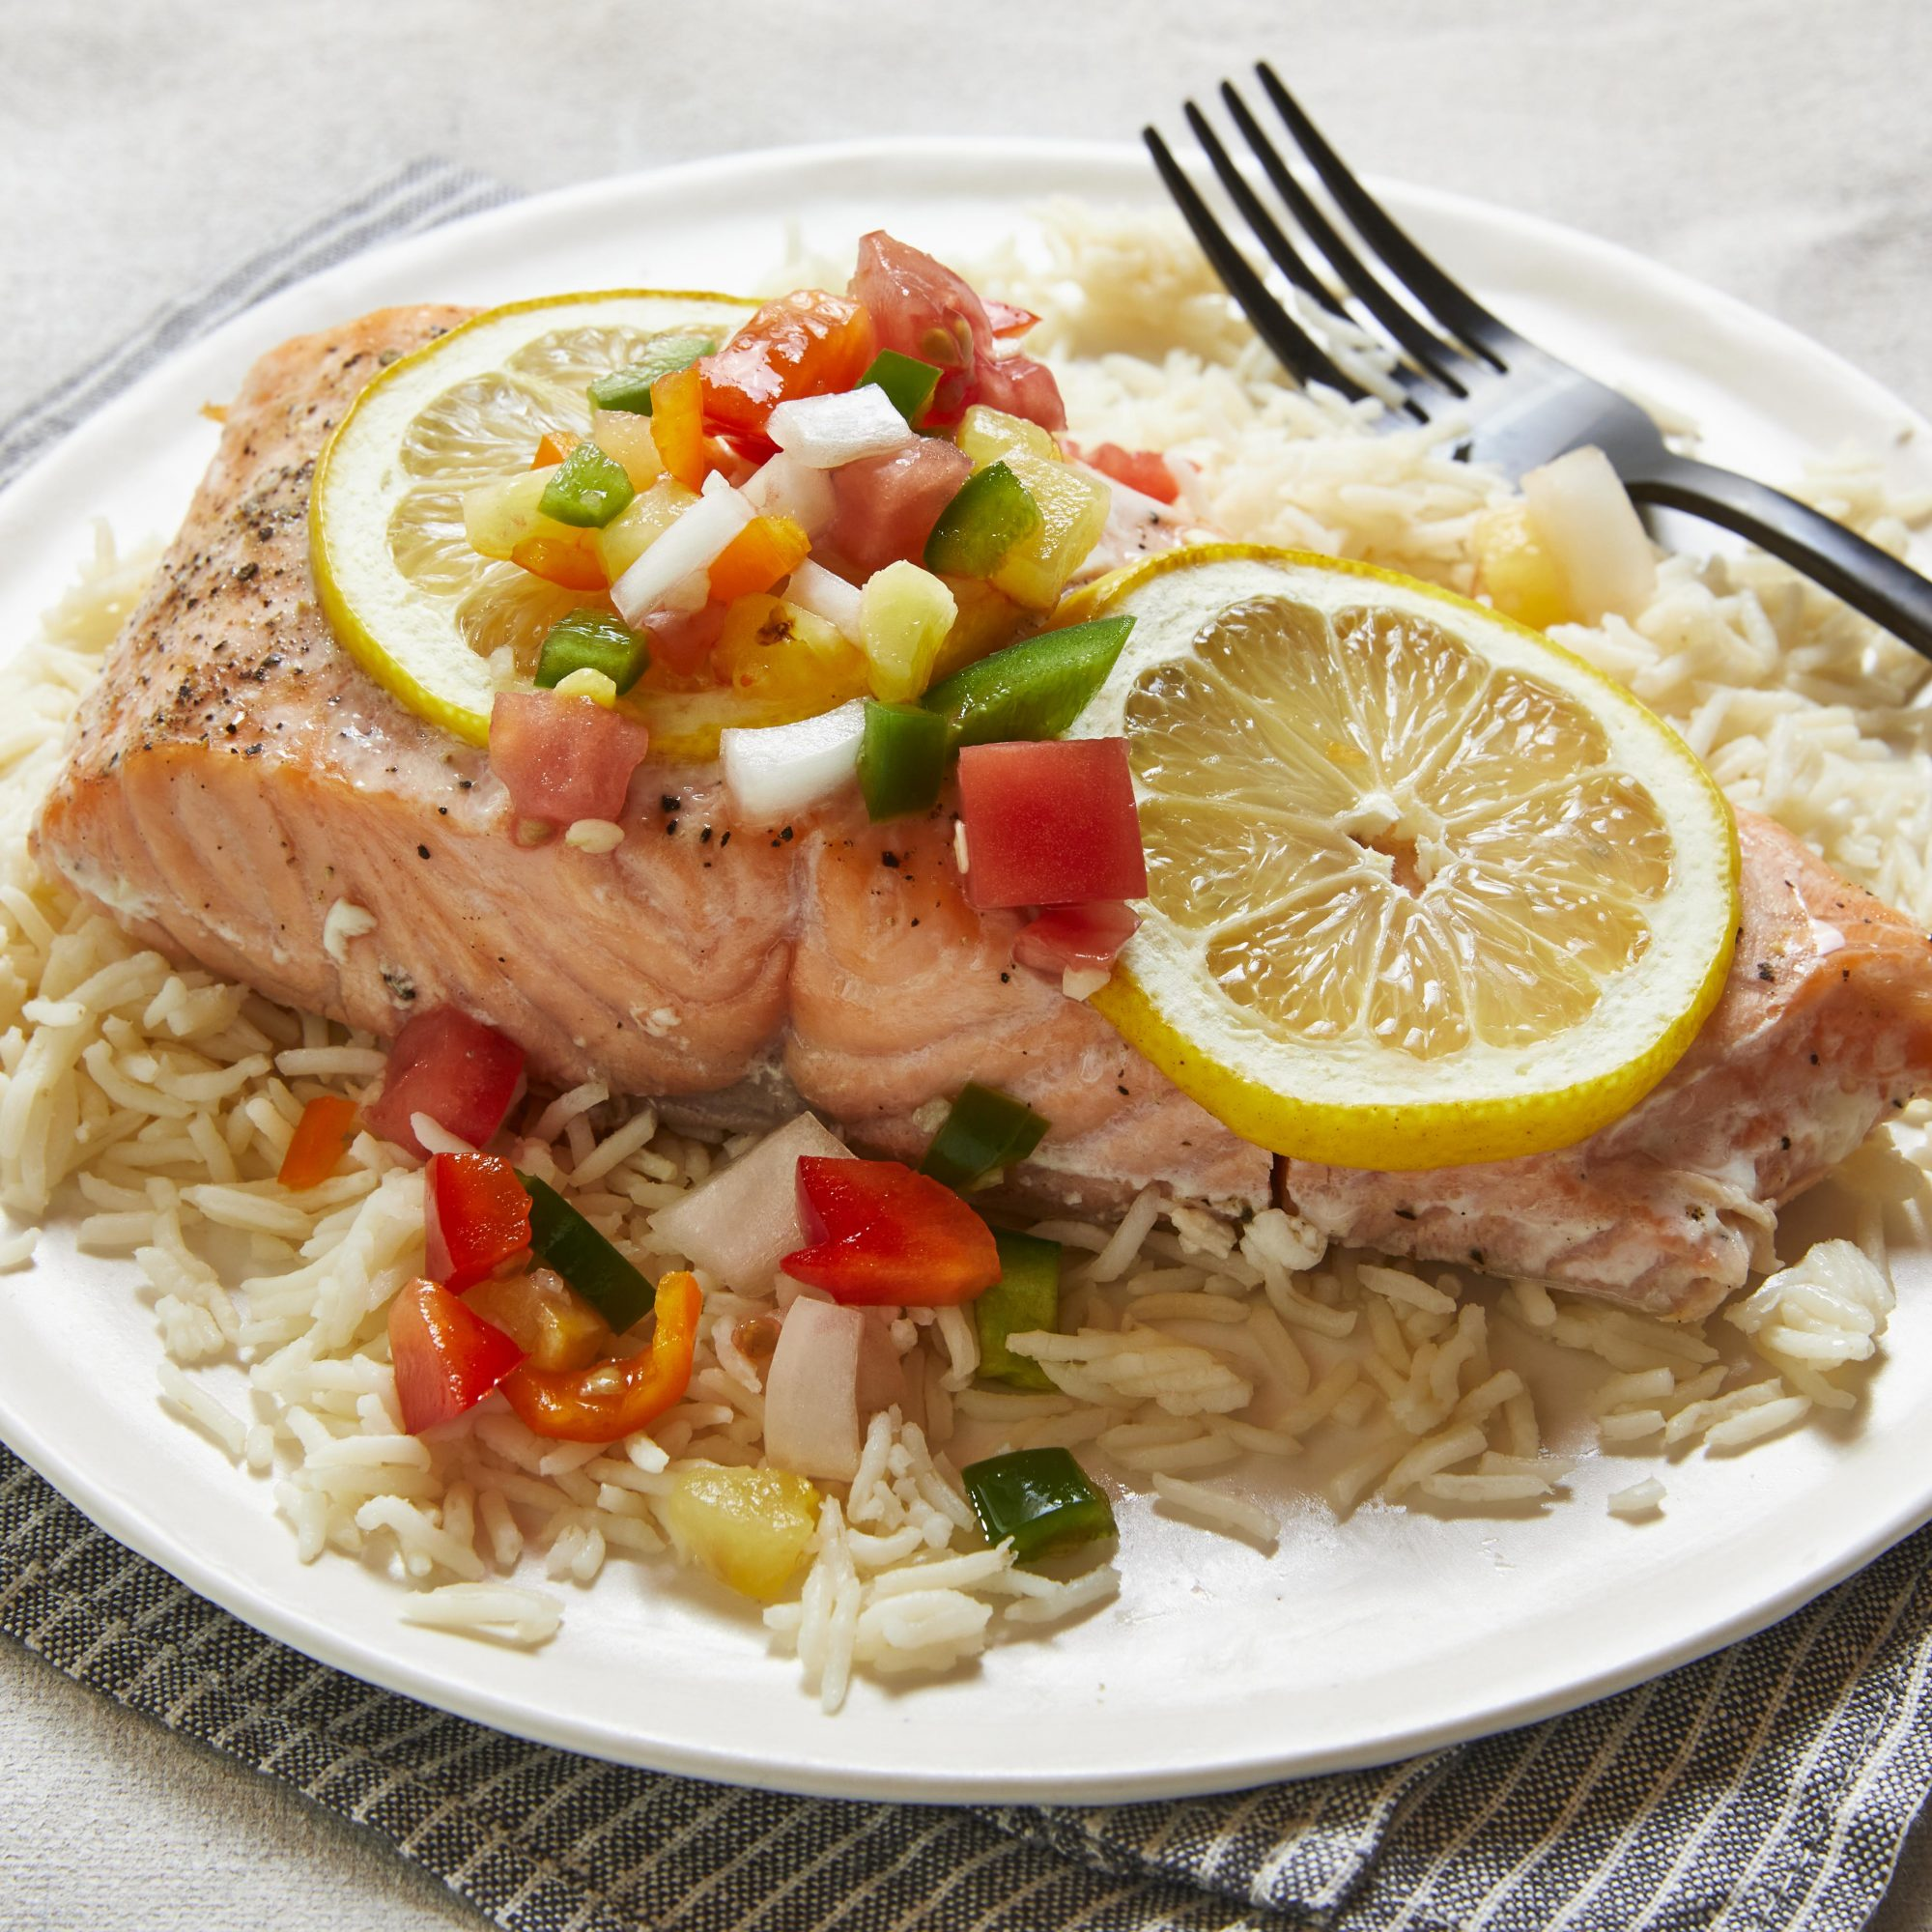 Close-up on salmon fillet with fruit salsa, over rice.